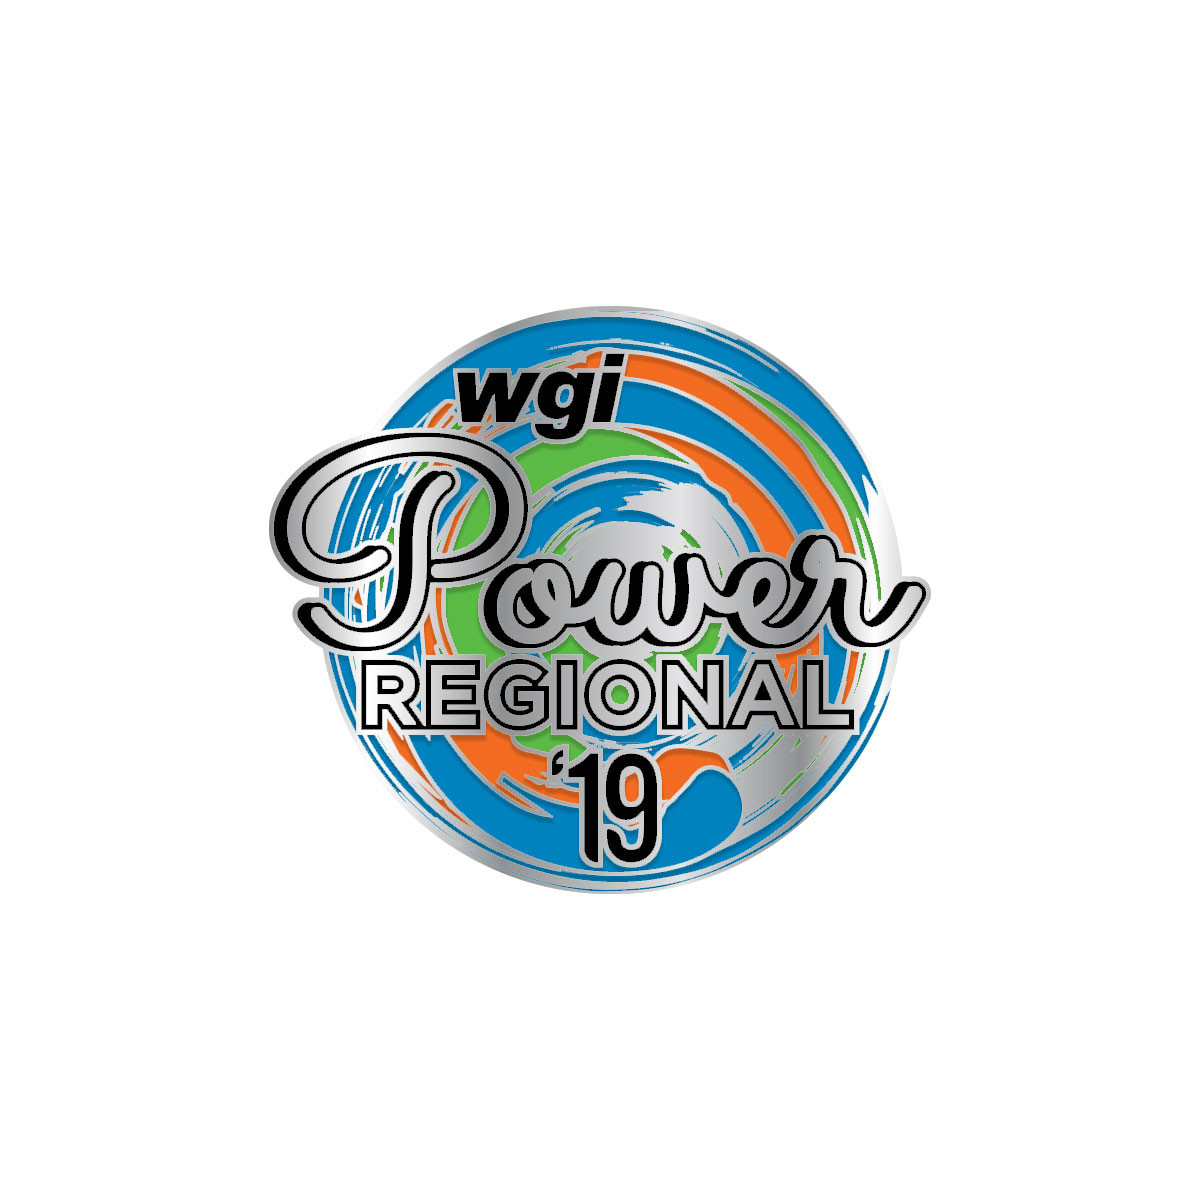 2019 WGI Power Regional Pin